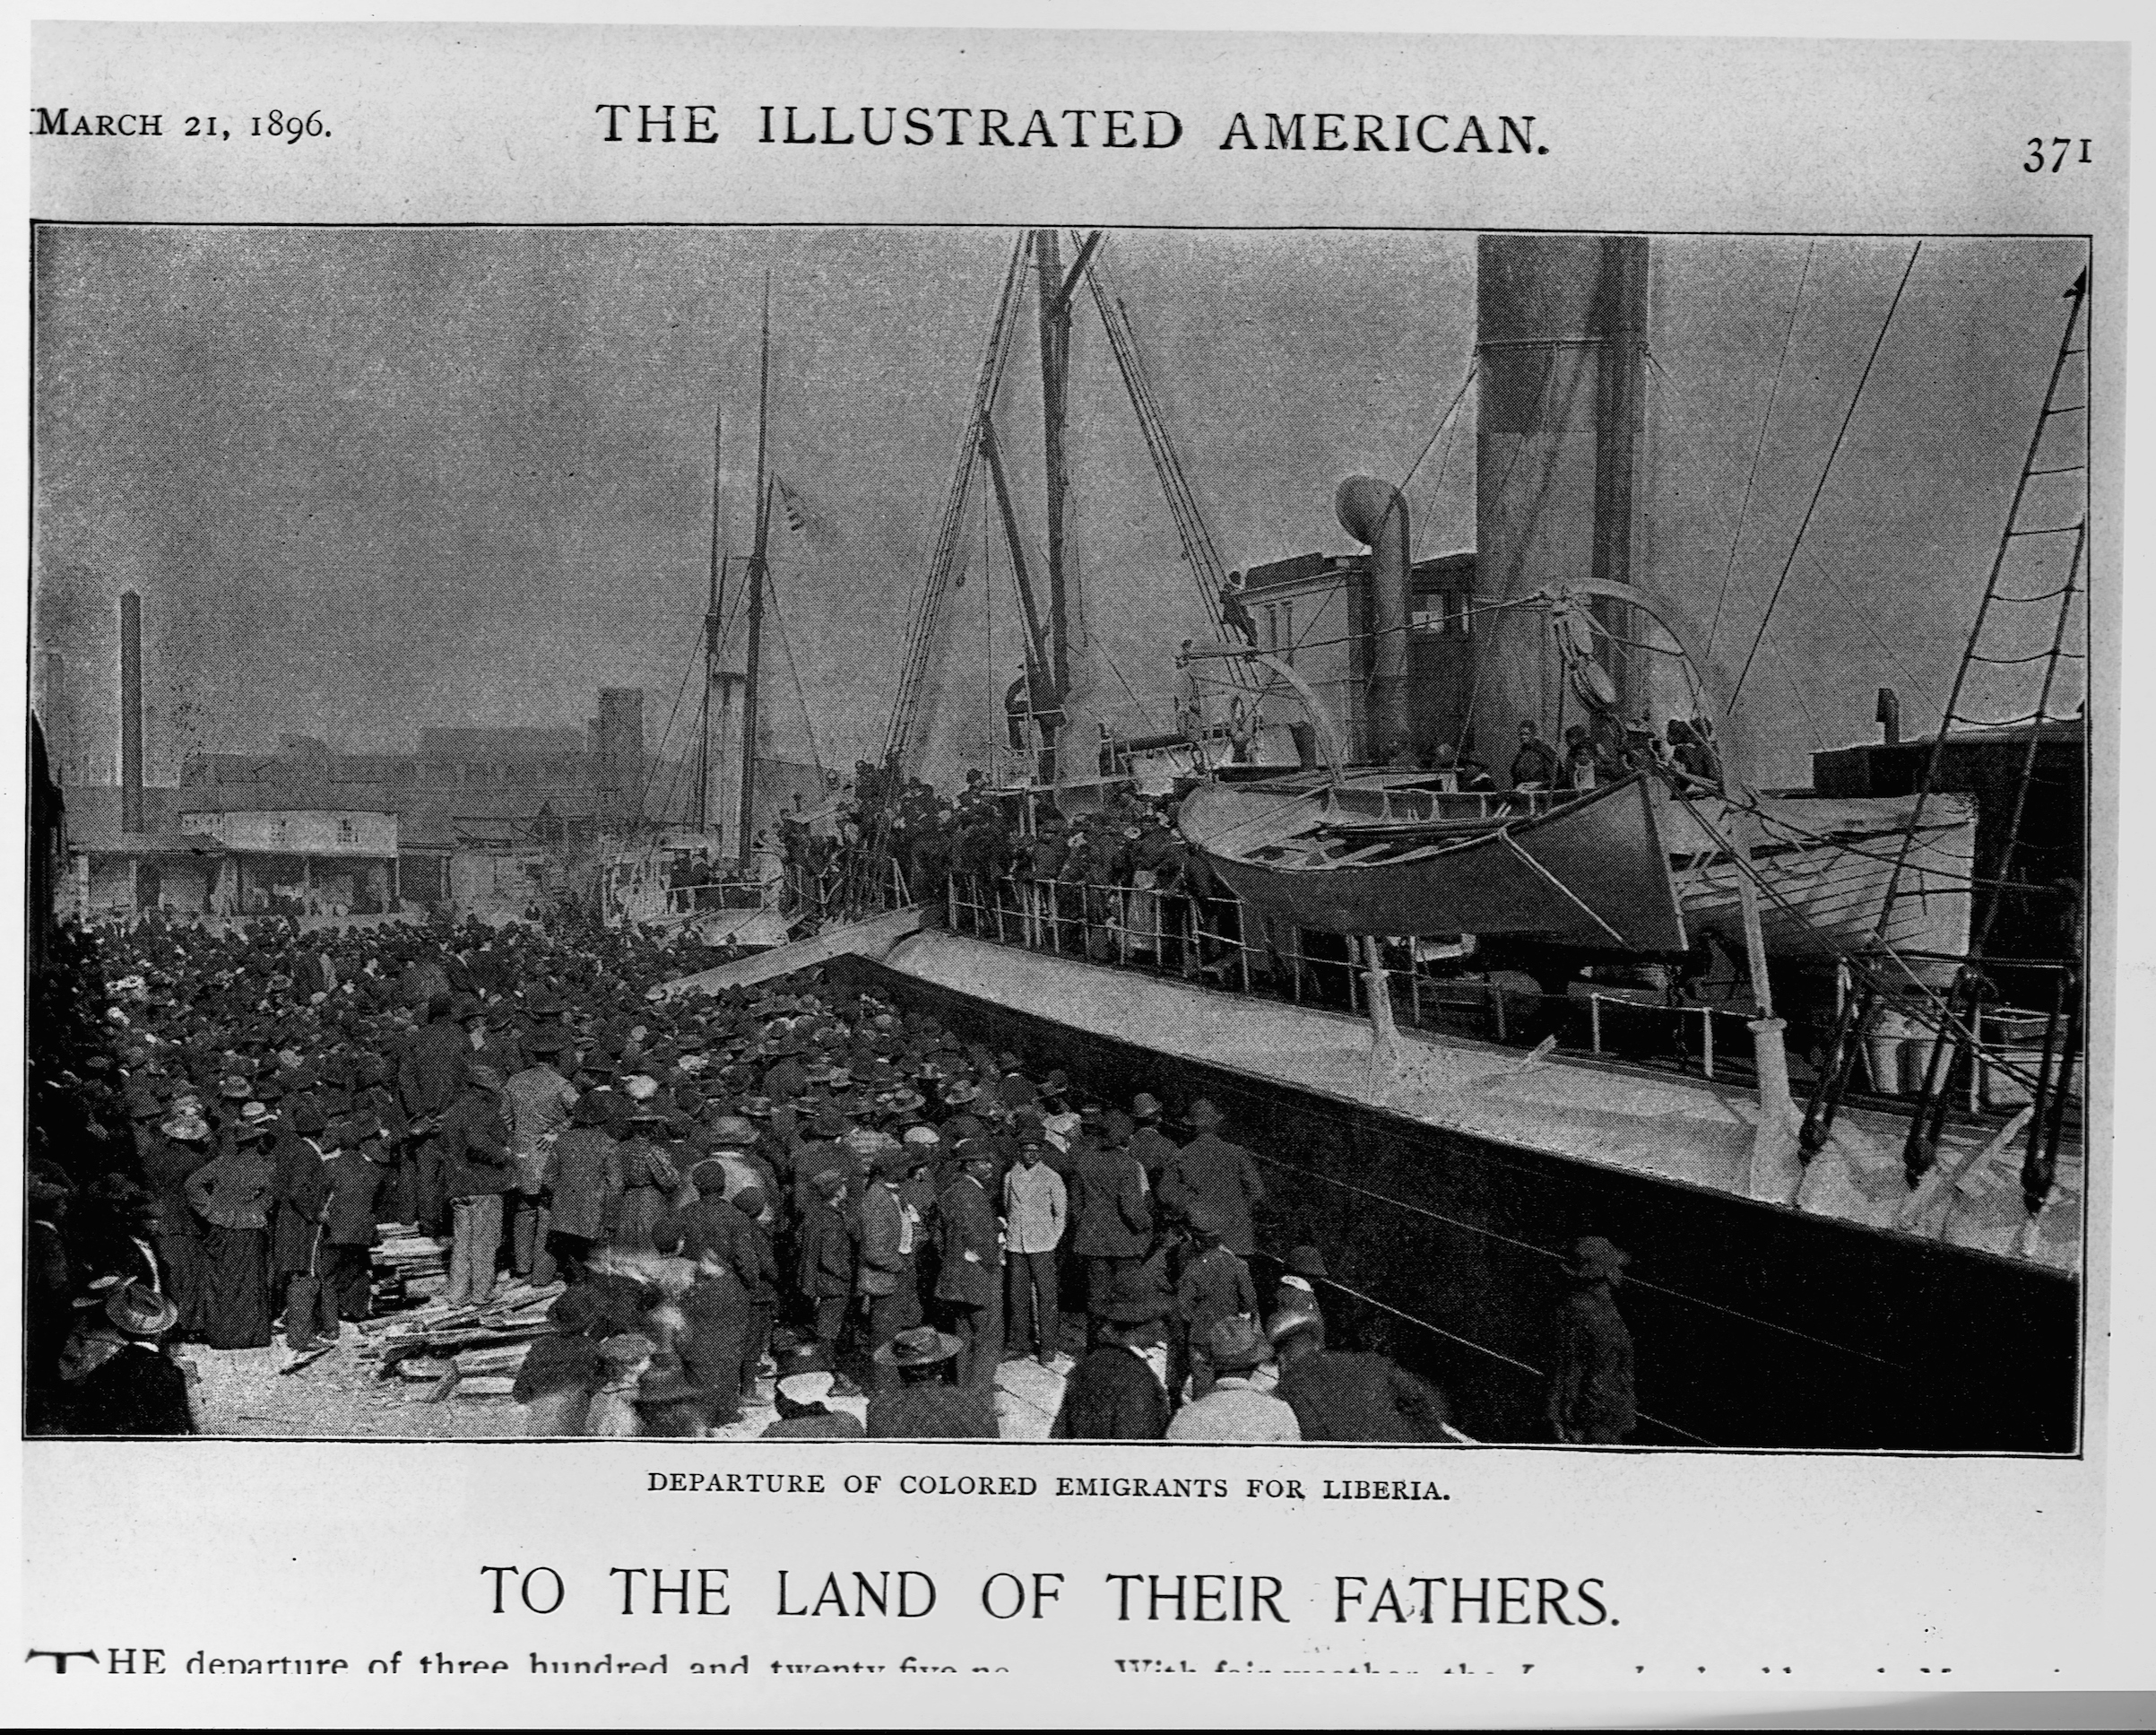 African-American emigrants depart for Liberia on the steamship Laurada, Savannah, Ga., March 1, 1896.